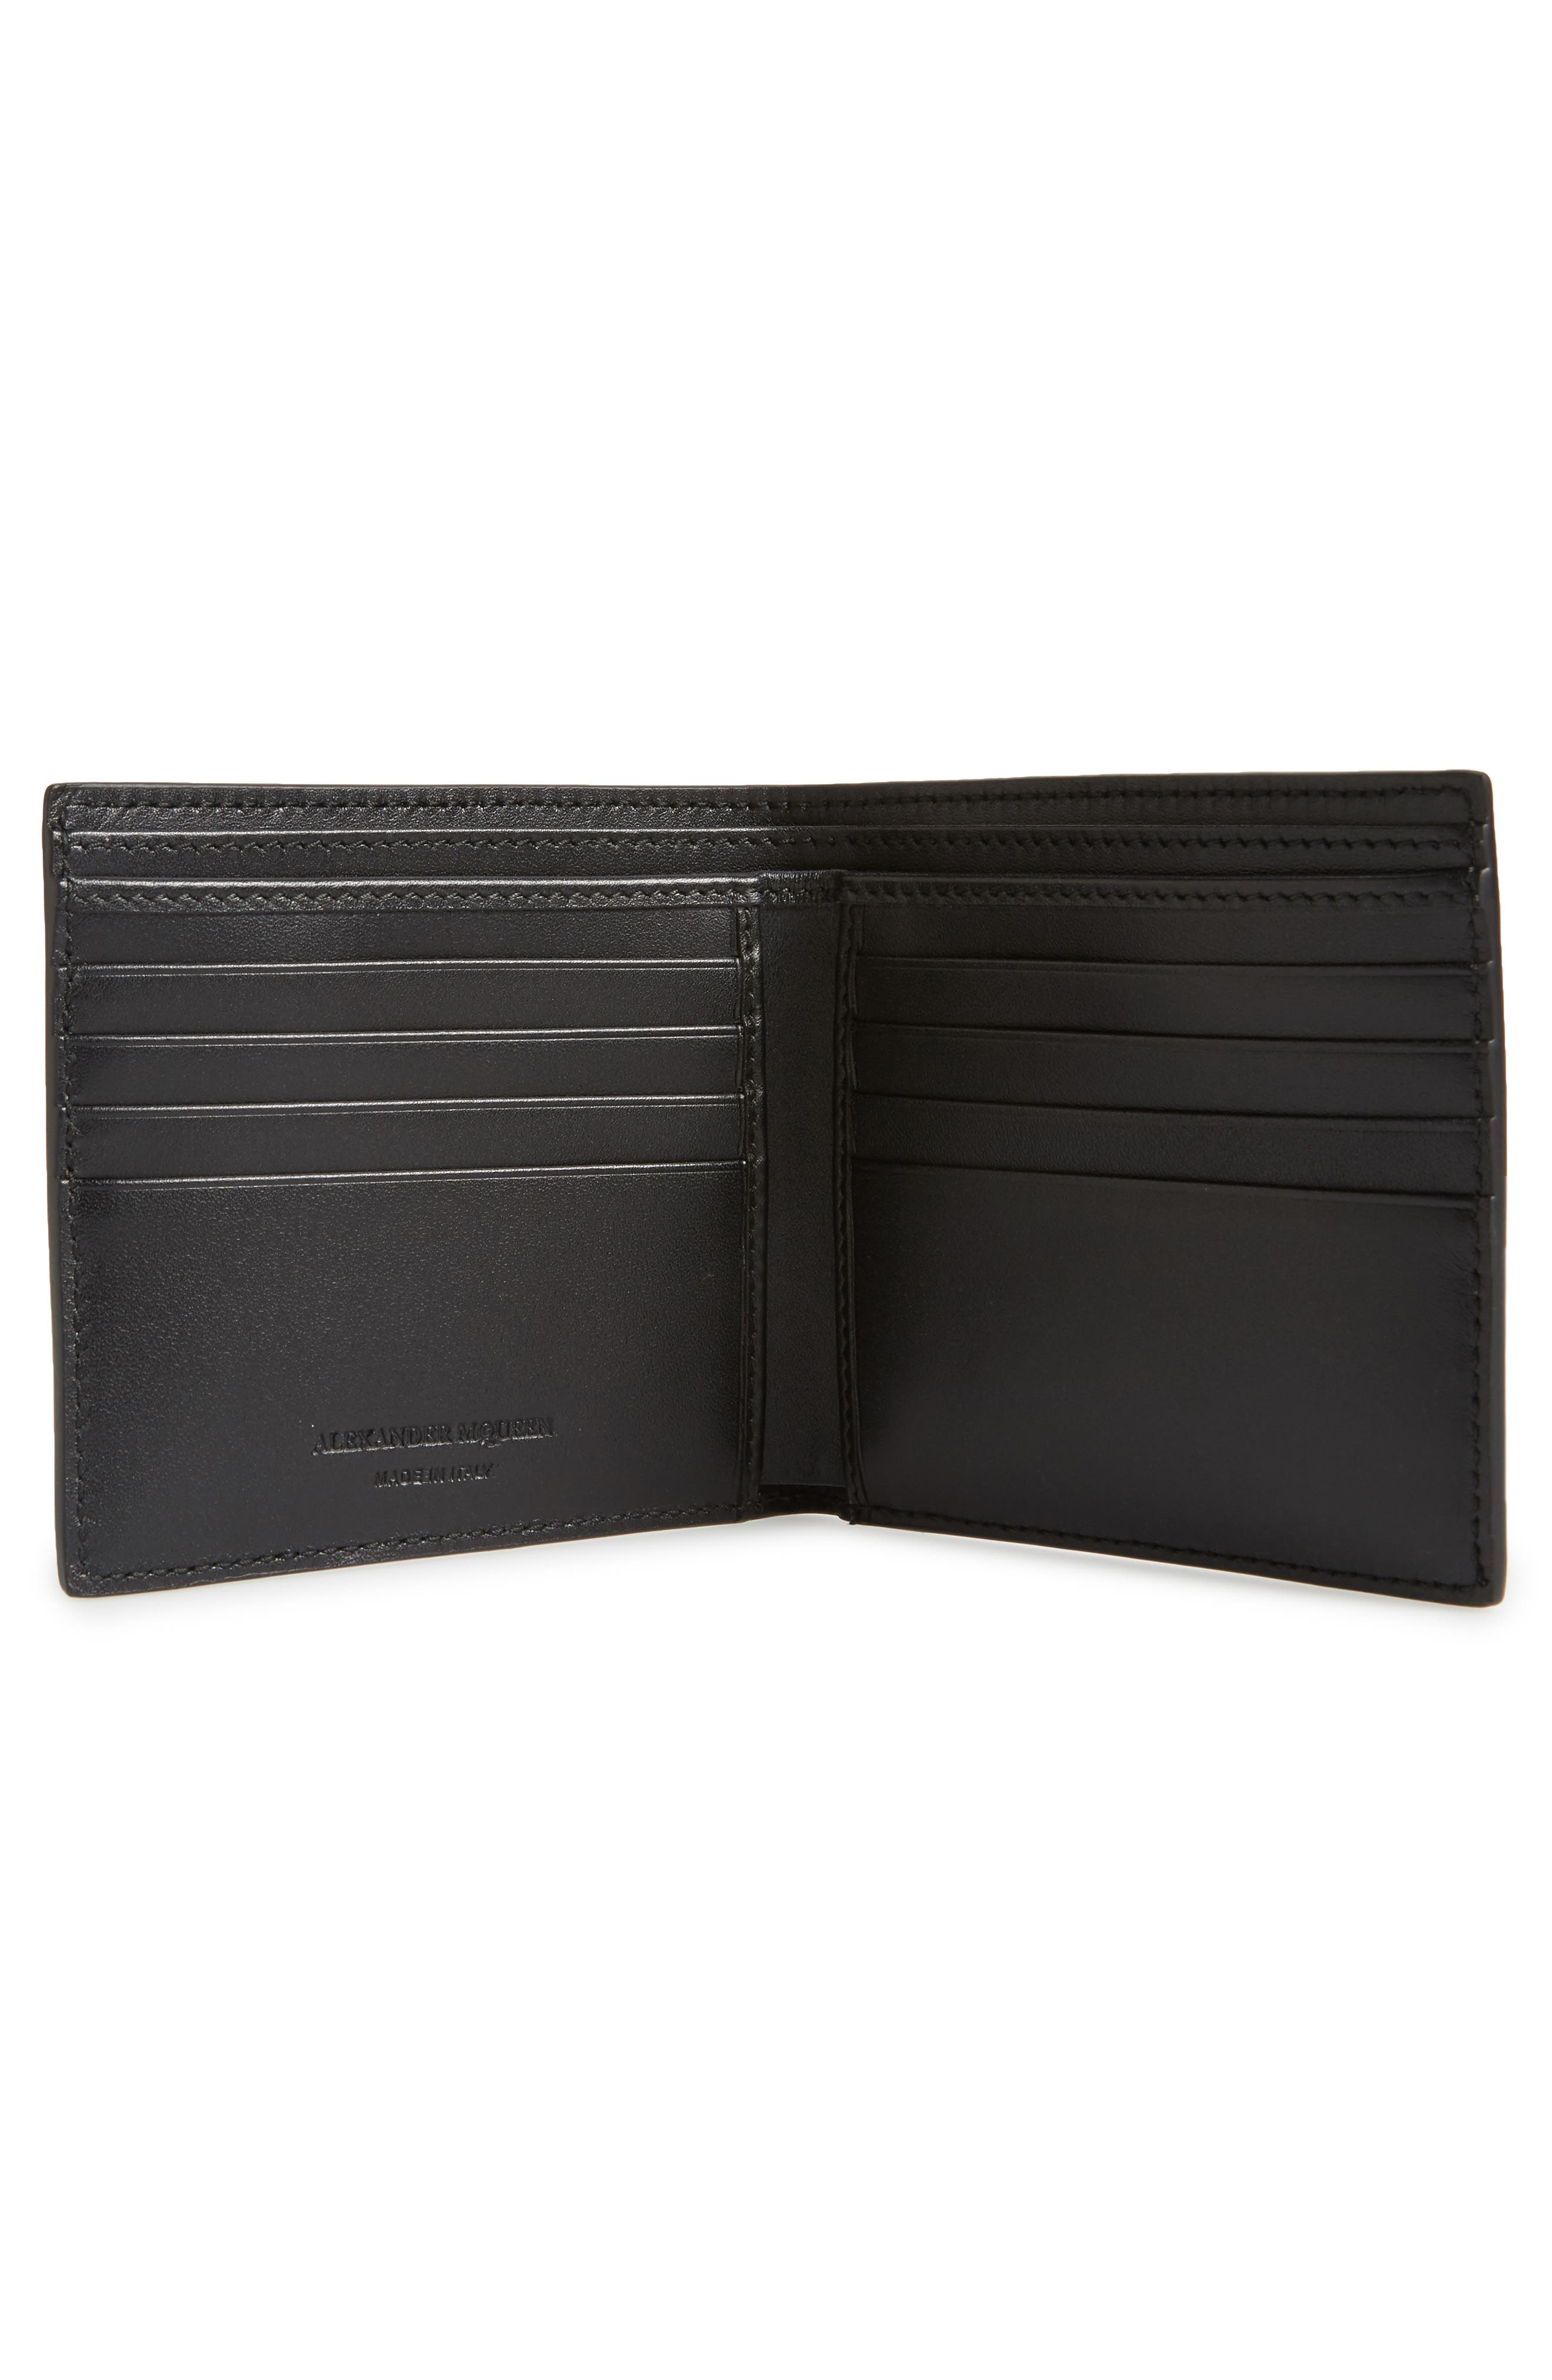 Camo Leather Billfold Wallet,                             Alternate thumbnail 2, color,                             009